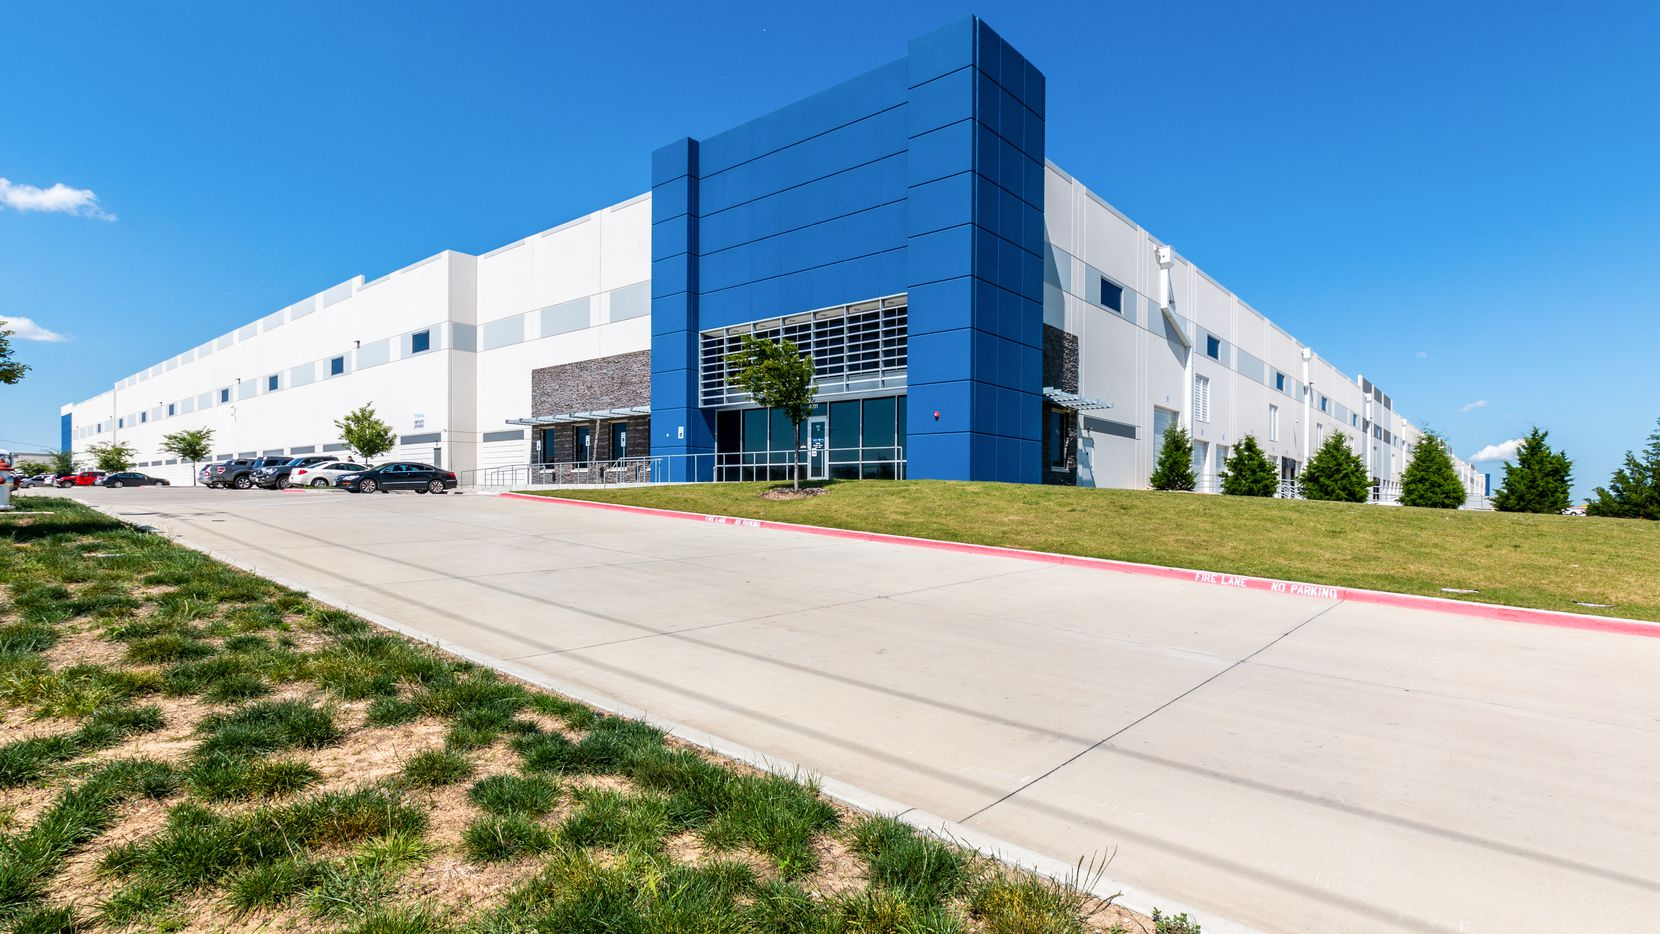 One of Transwestern Development's new North Texas industrial projects is the Park 20/360 business park in Arlington.